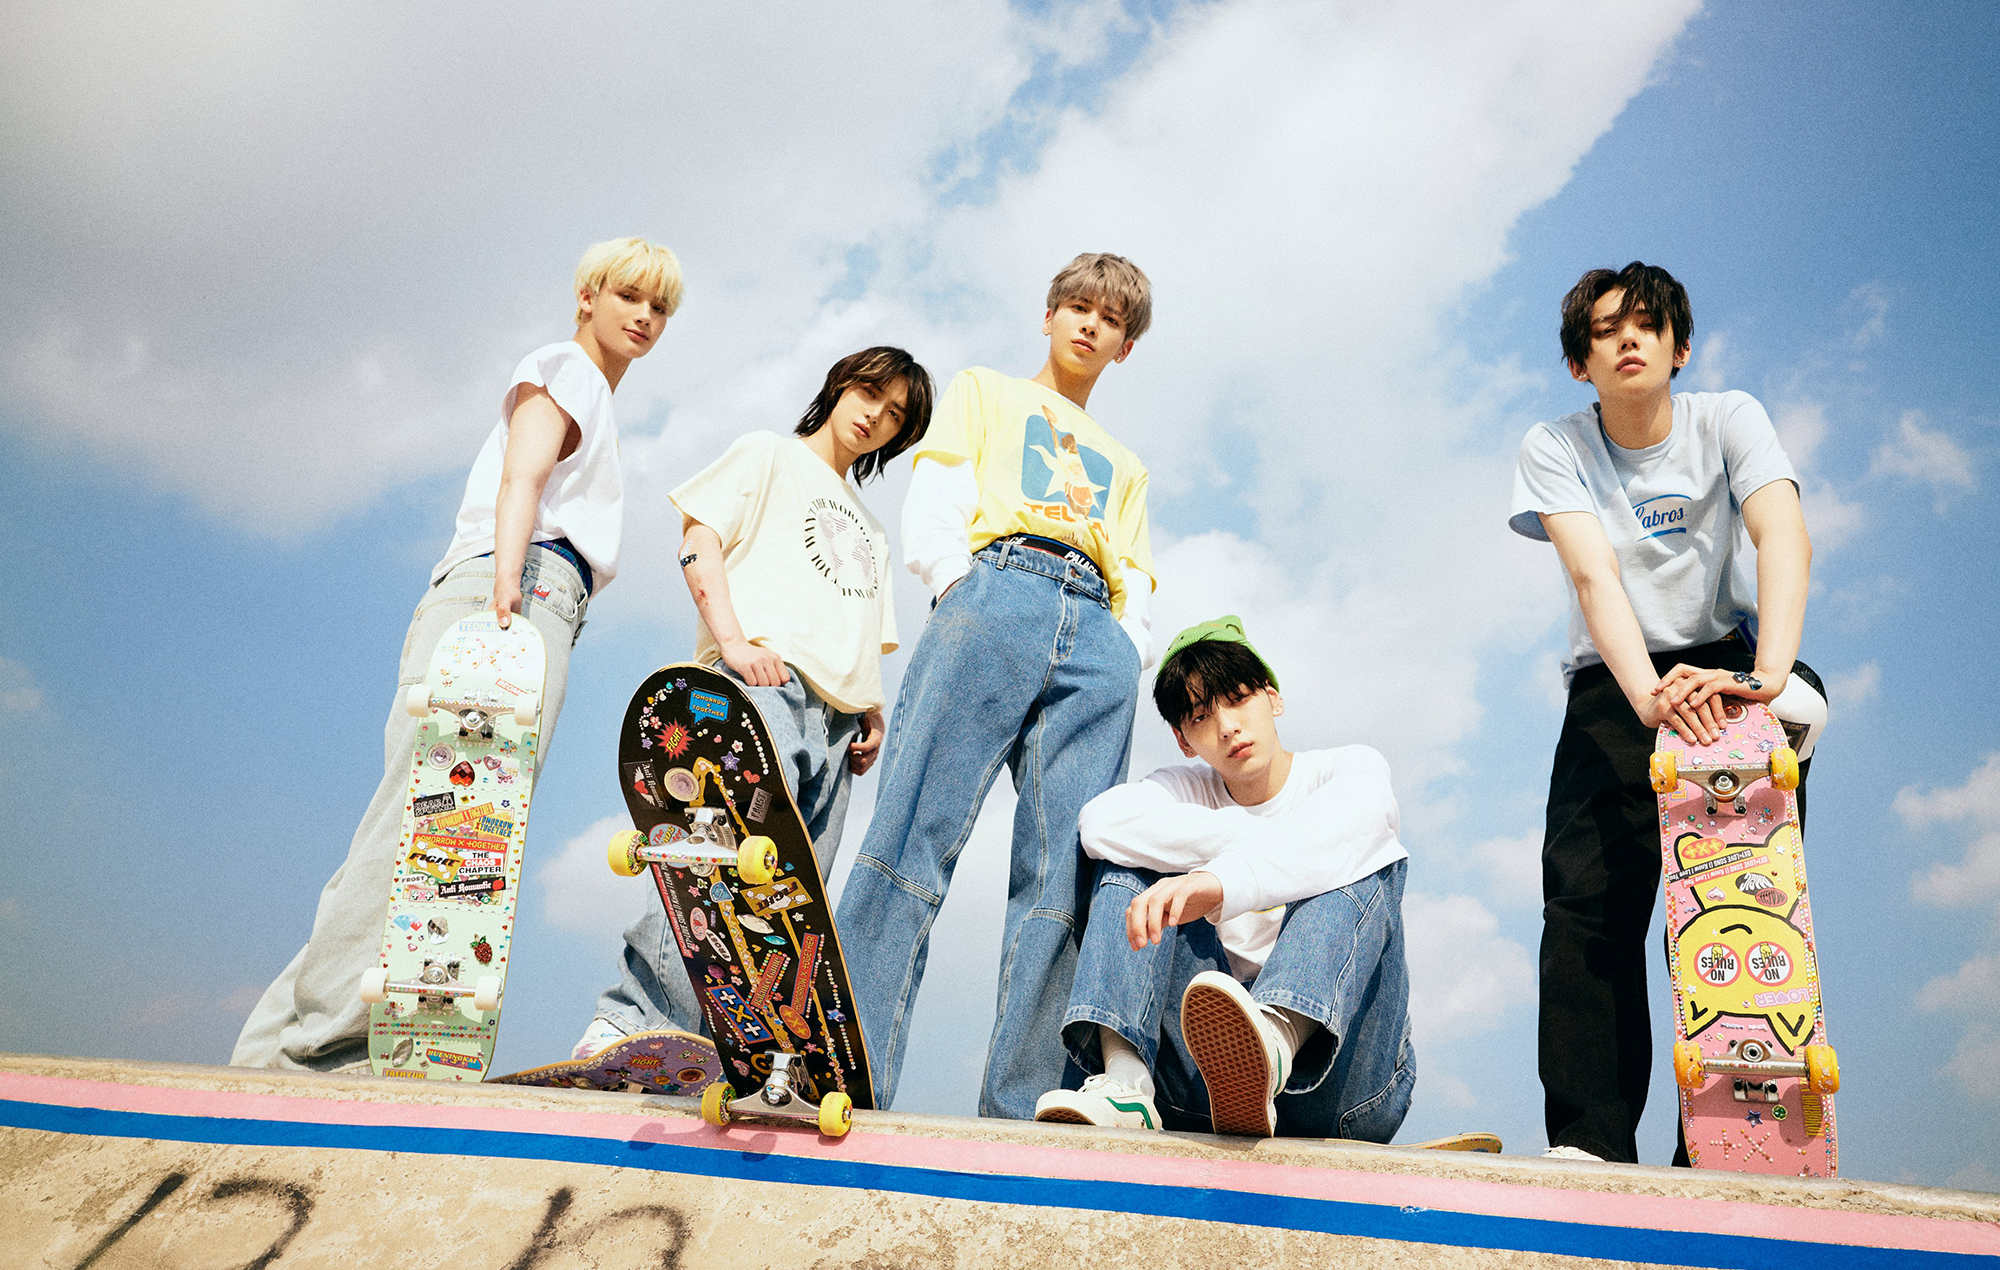 TXT are set to perform on 'The Late Show' later this week